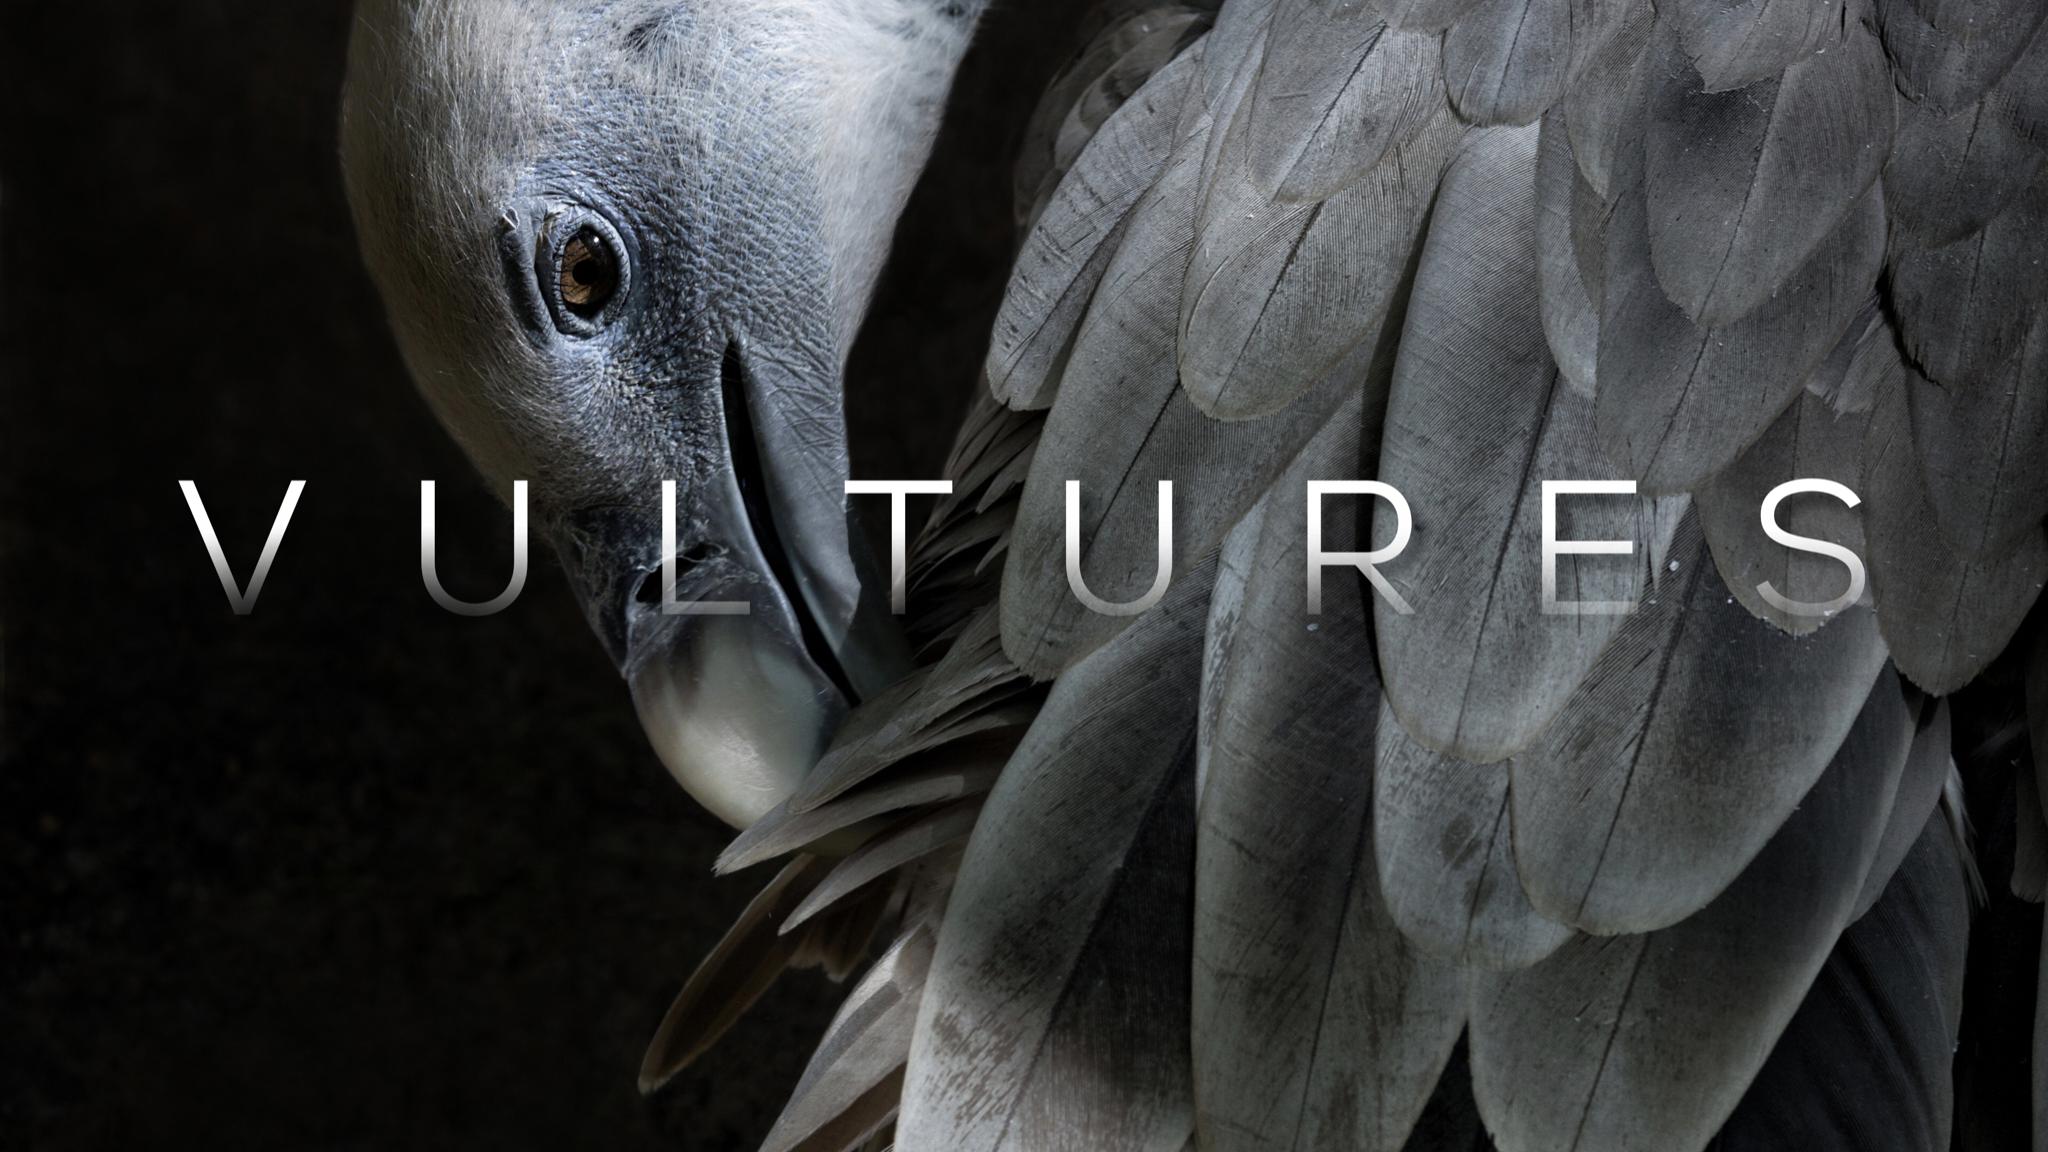 Vultures Series - Watch and Listen